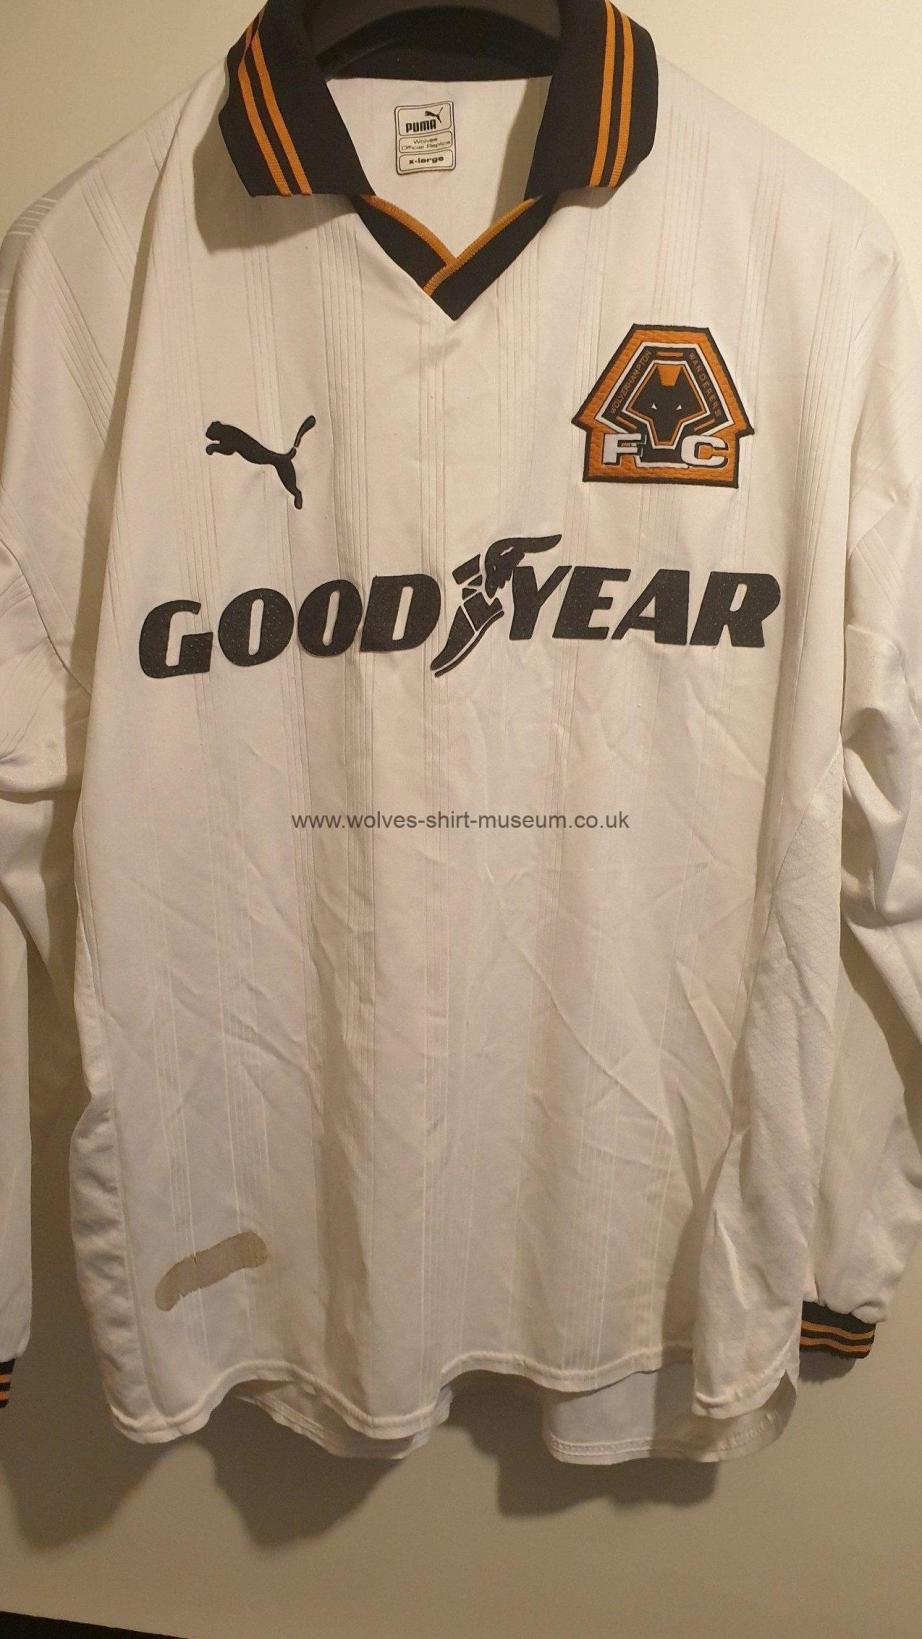 1999-2000 away shirt by Puma - front